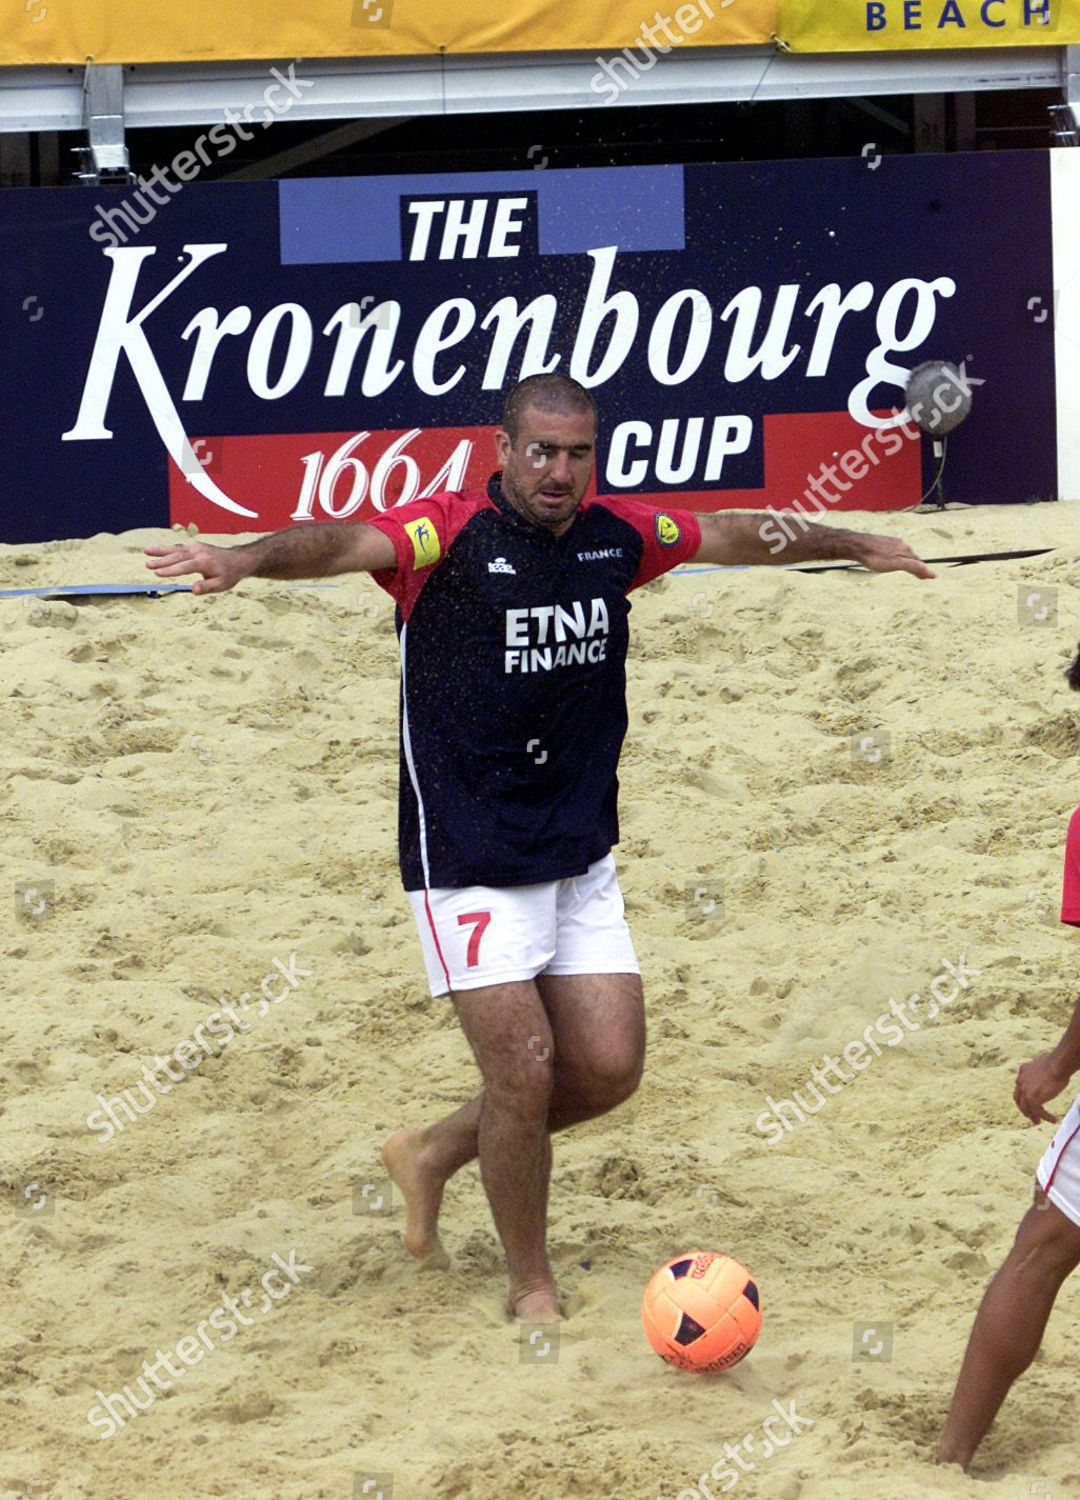 Jaded by perceived harsh treatment by the french football federation, cantona even retired briefly at the age of just 24. Eric Cantona Plays France Kronenbourg Cup Beach Redaktionellt Stockfoto Stockbilder Shutterstock